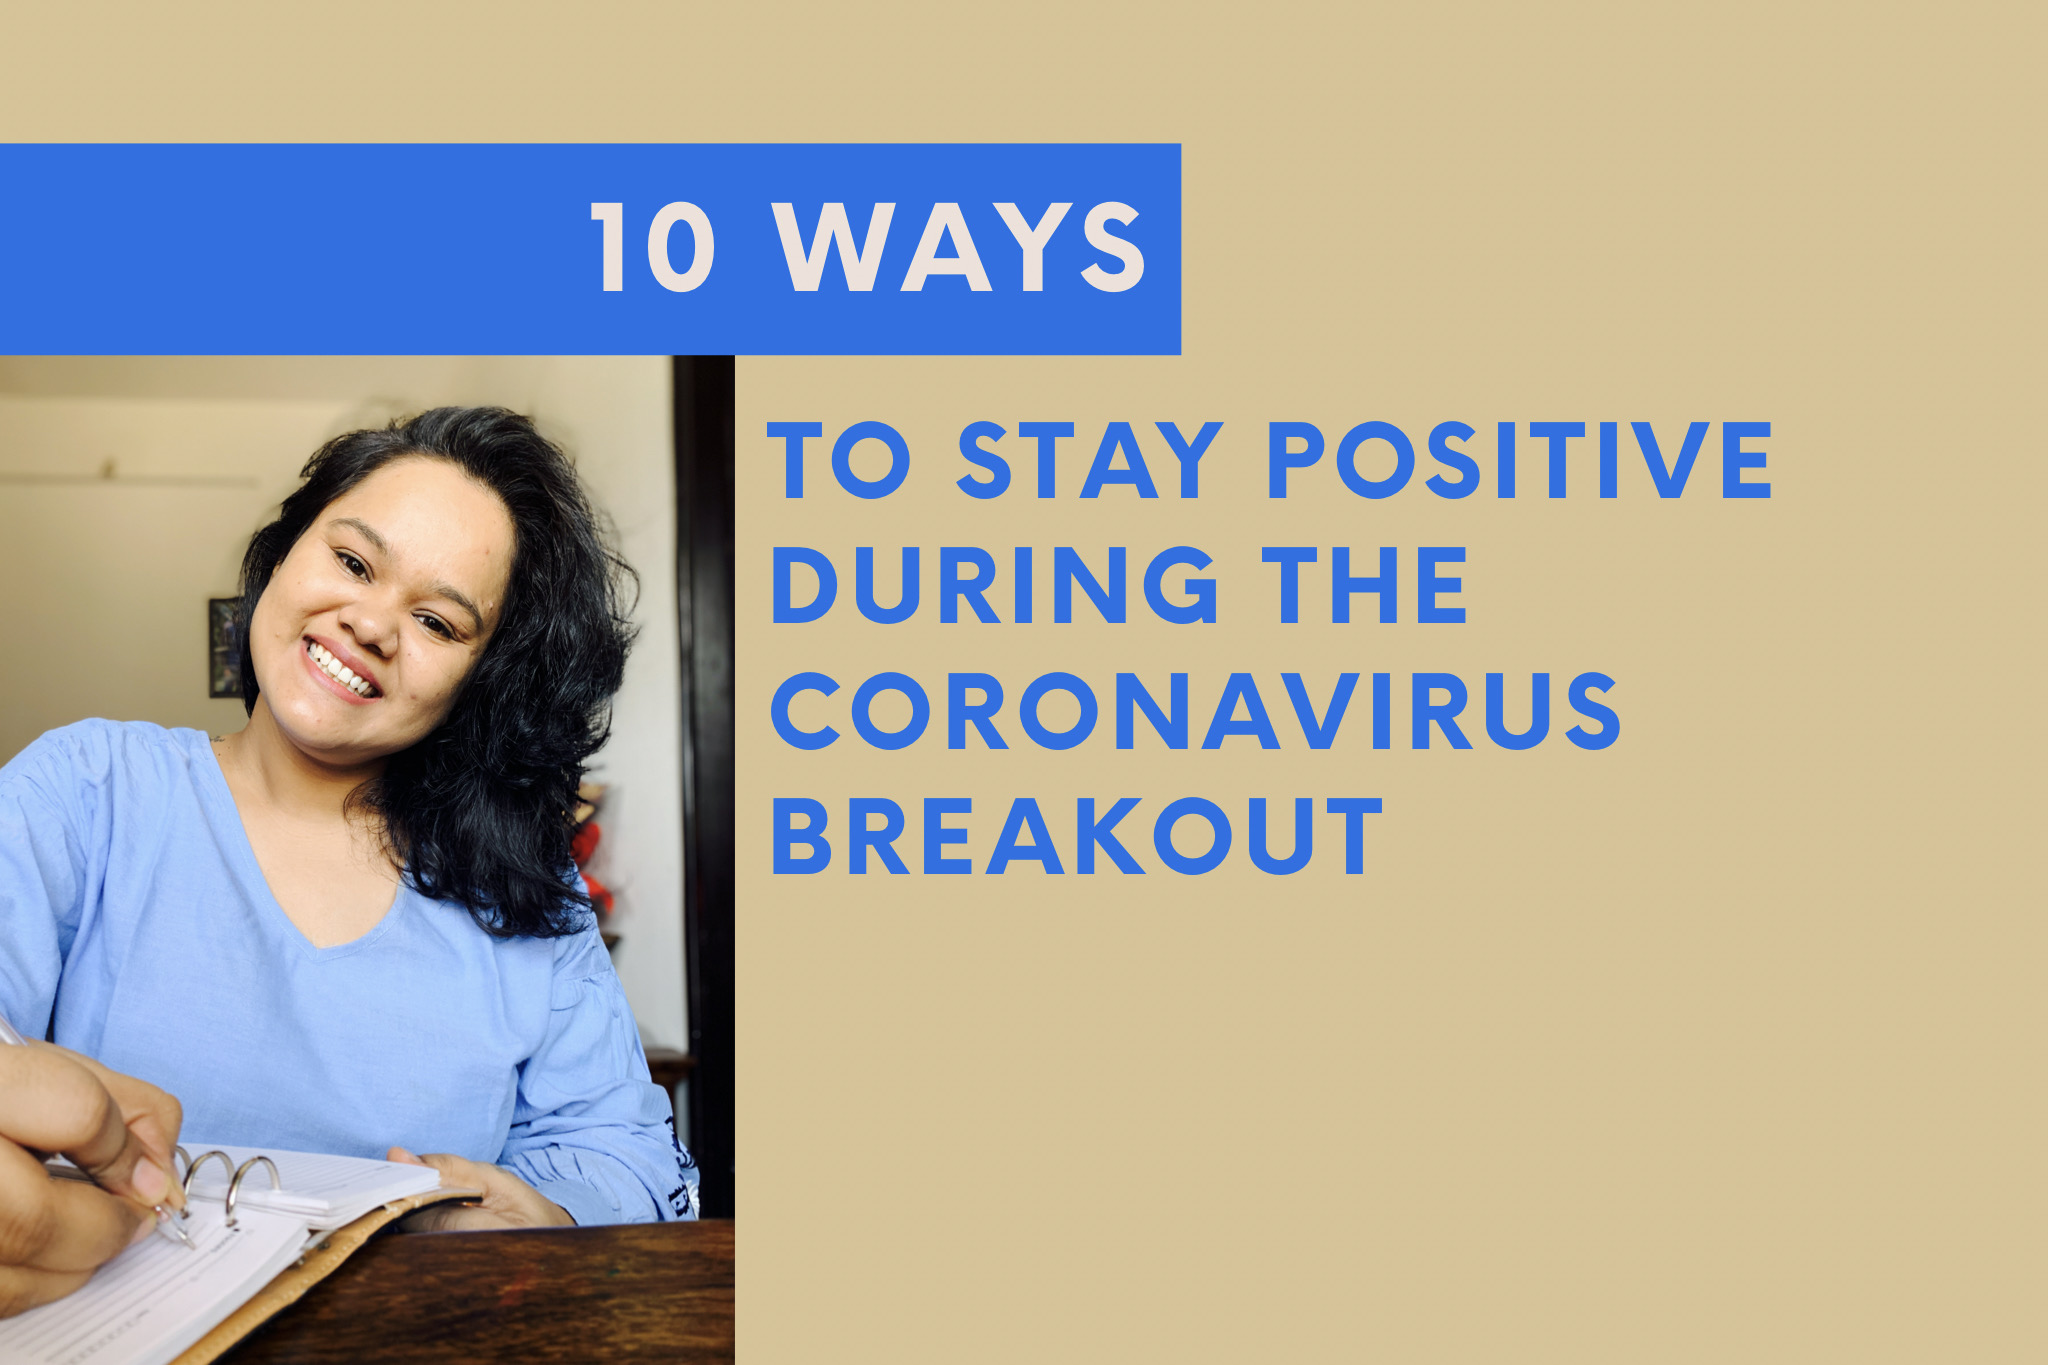 ways to stay positive during the Coronavirus breakout